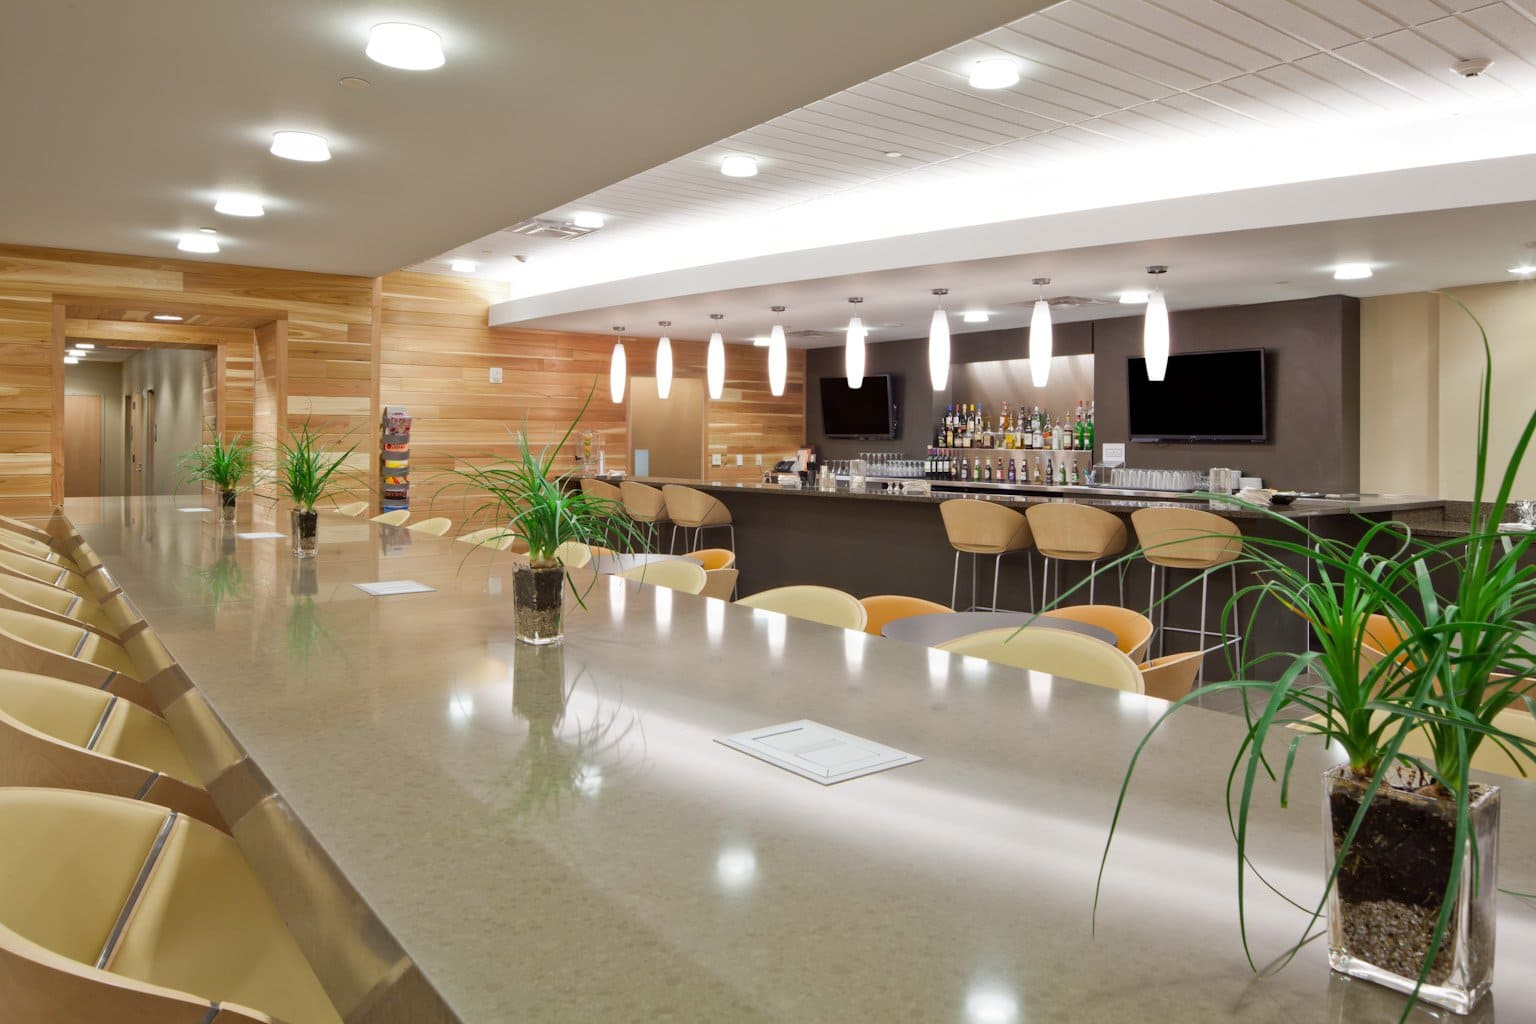 LoungeBuddy Locations (Access At Airport Lounges Worldwide